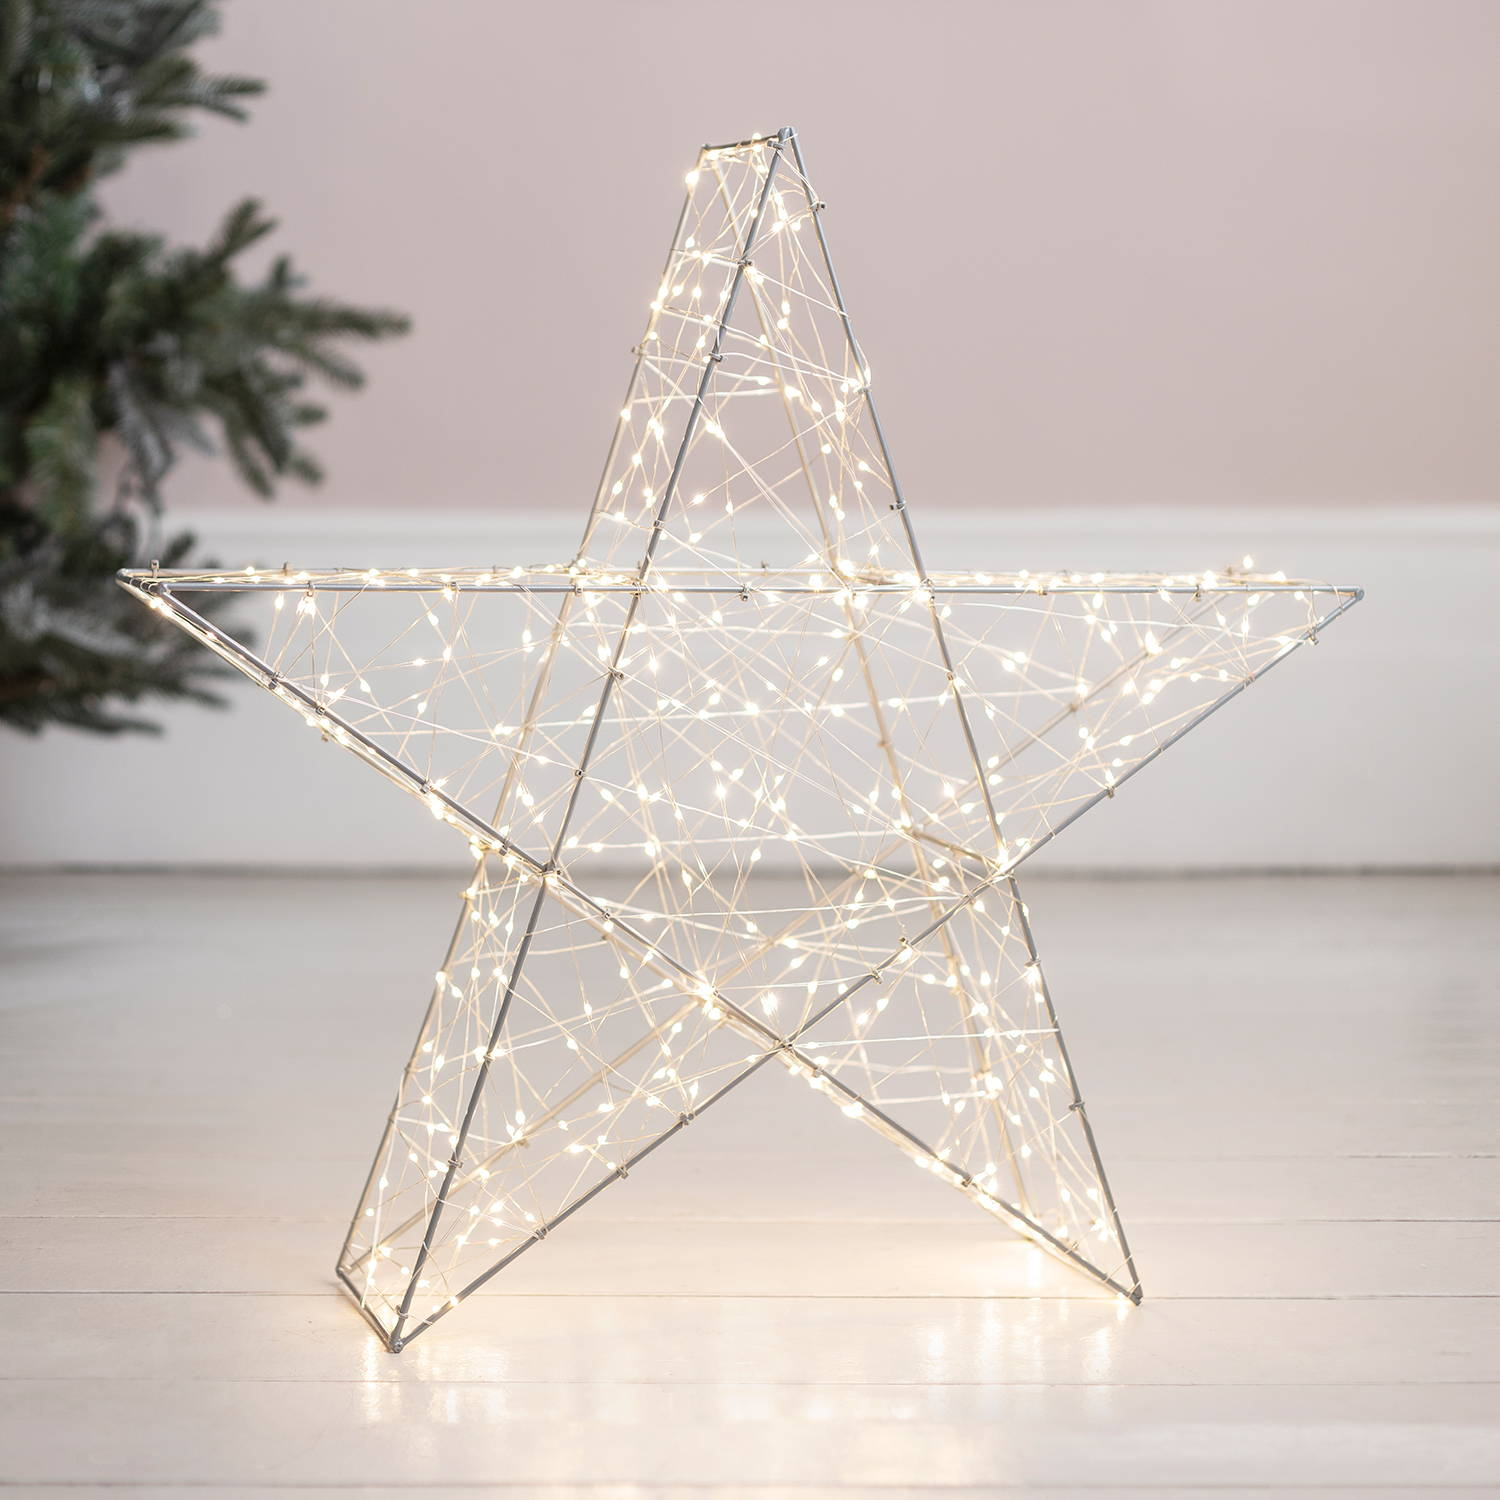 LED 3D star light with metal frame